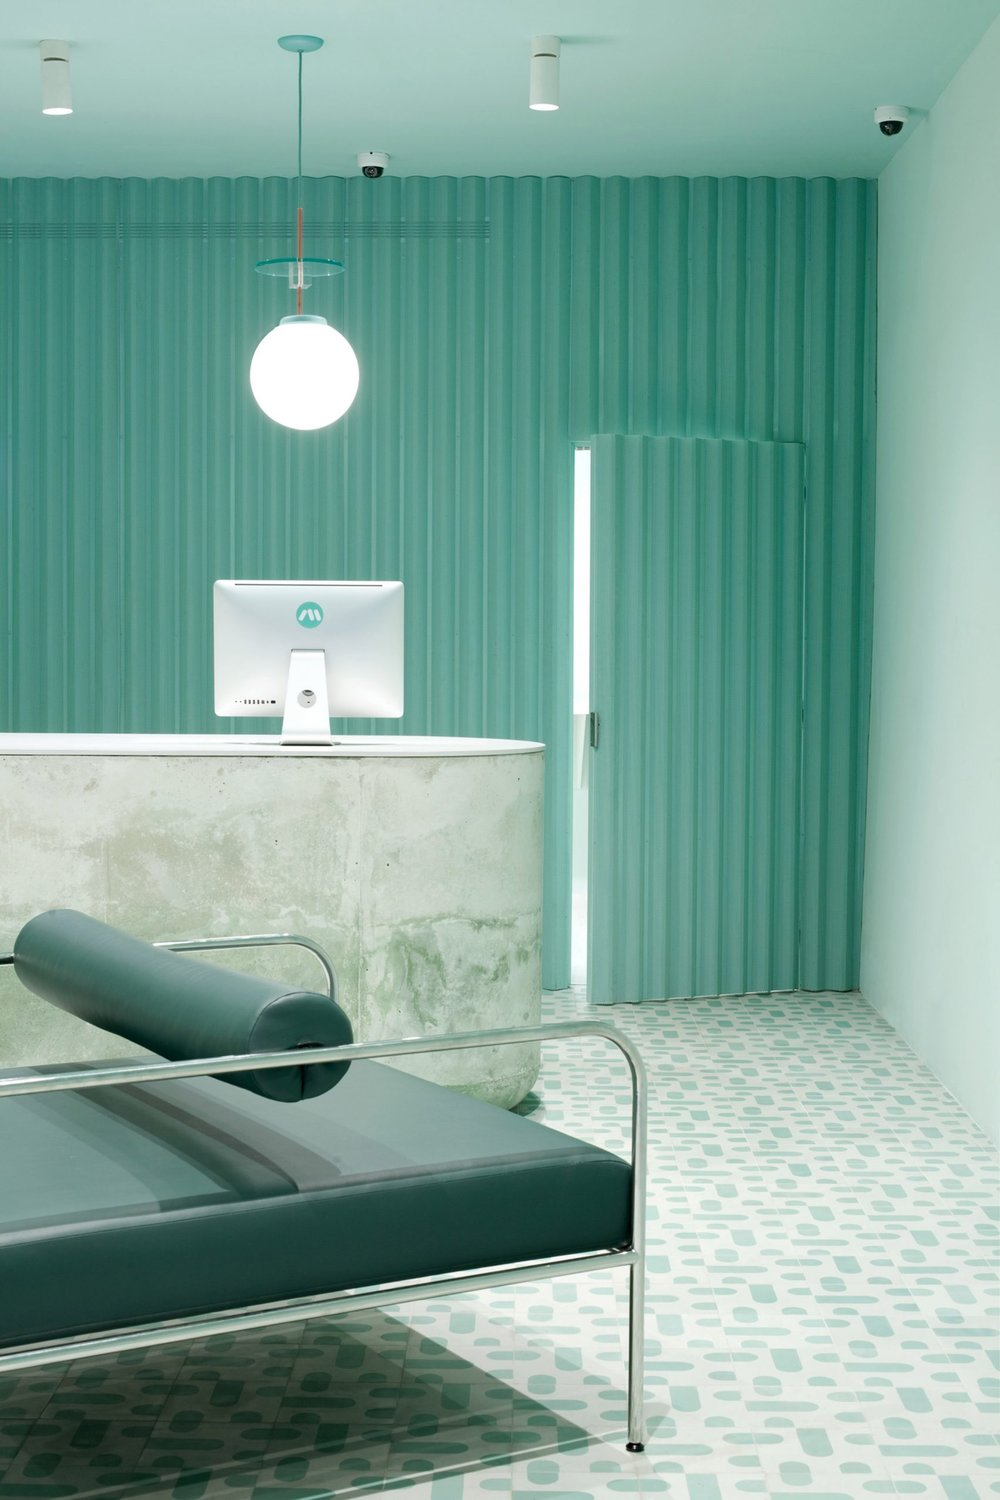 Medly Pharmazy by Sergio Mannino, Martina Guandalini, featured in  Dezeen